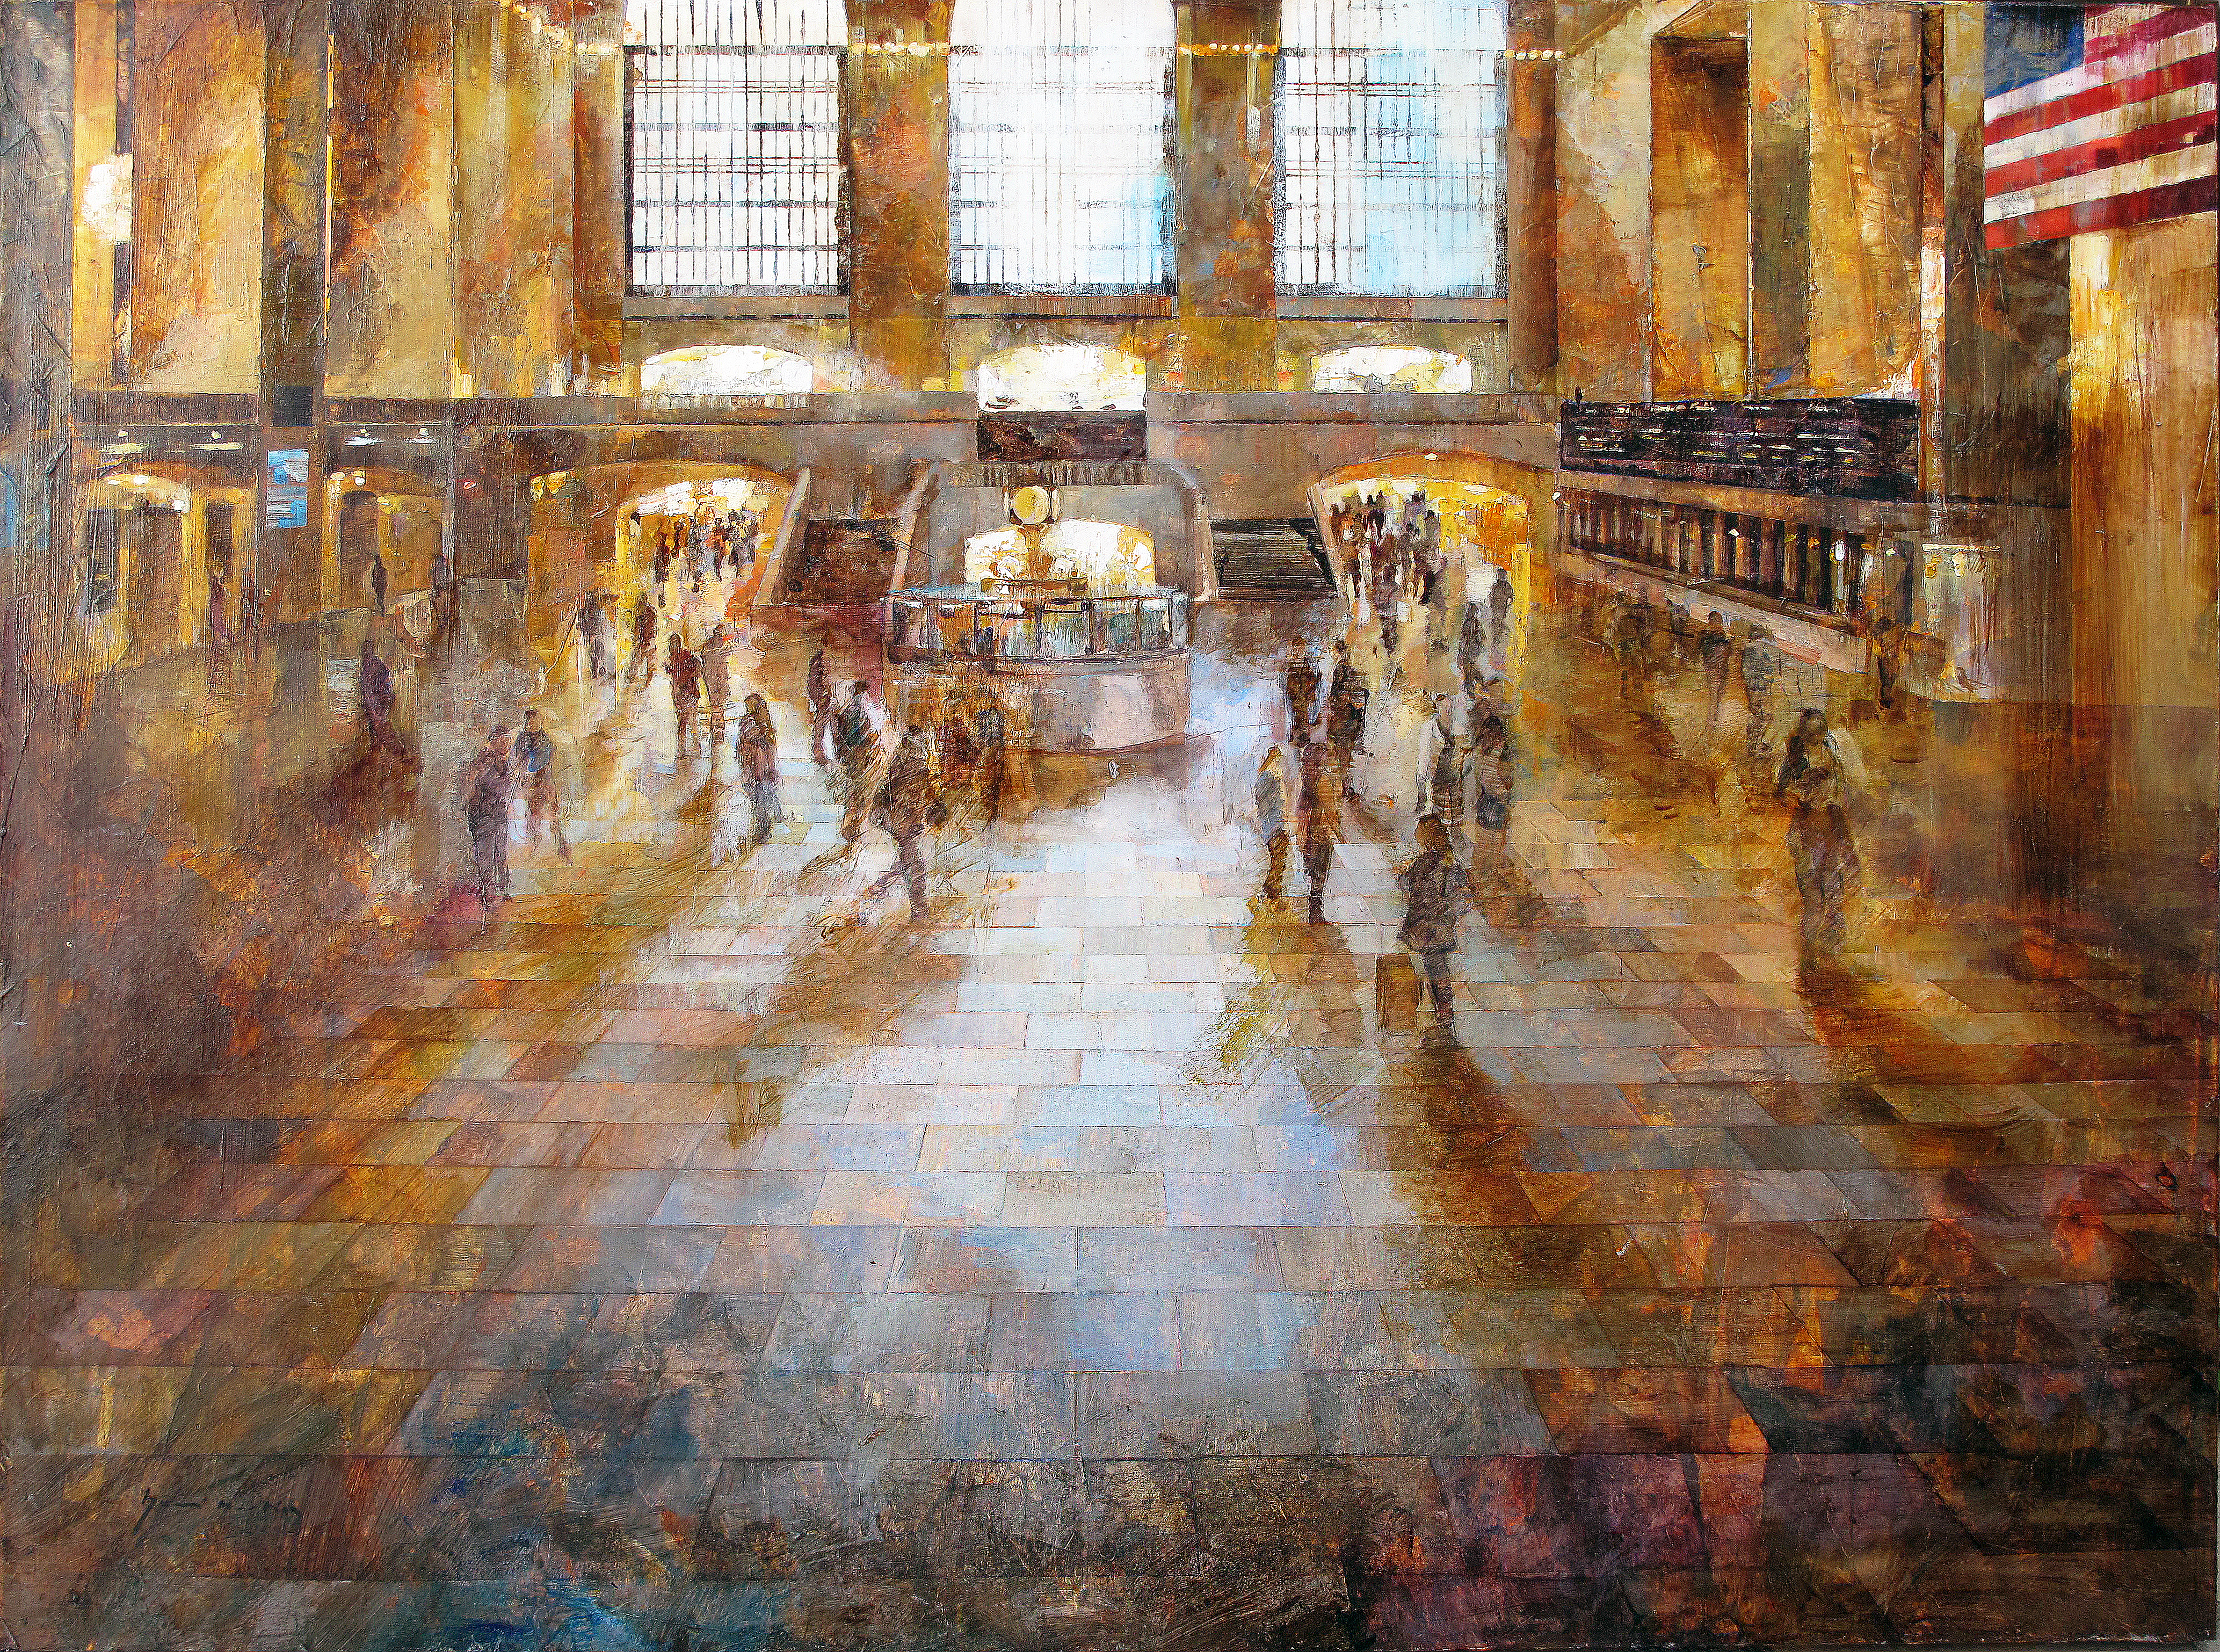 Central Station NYC - 75 x 100 cm